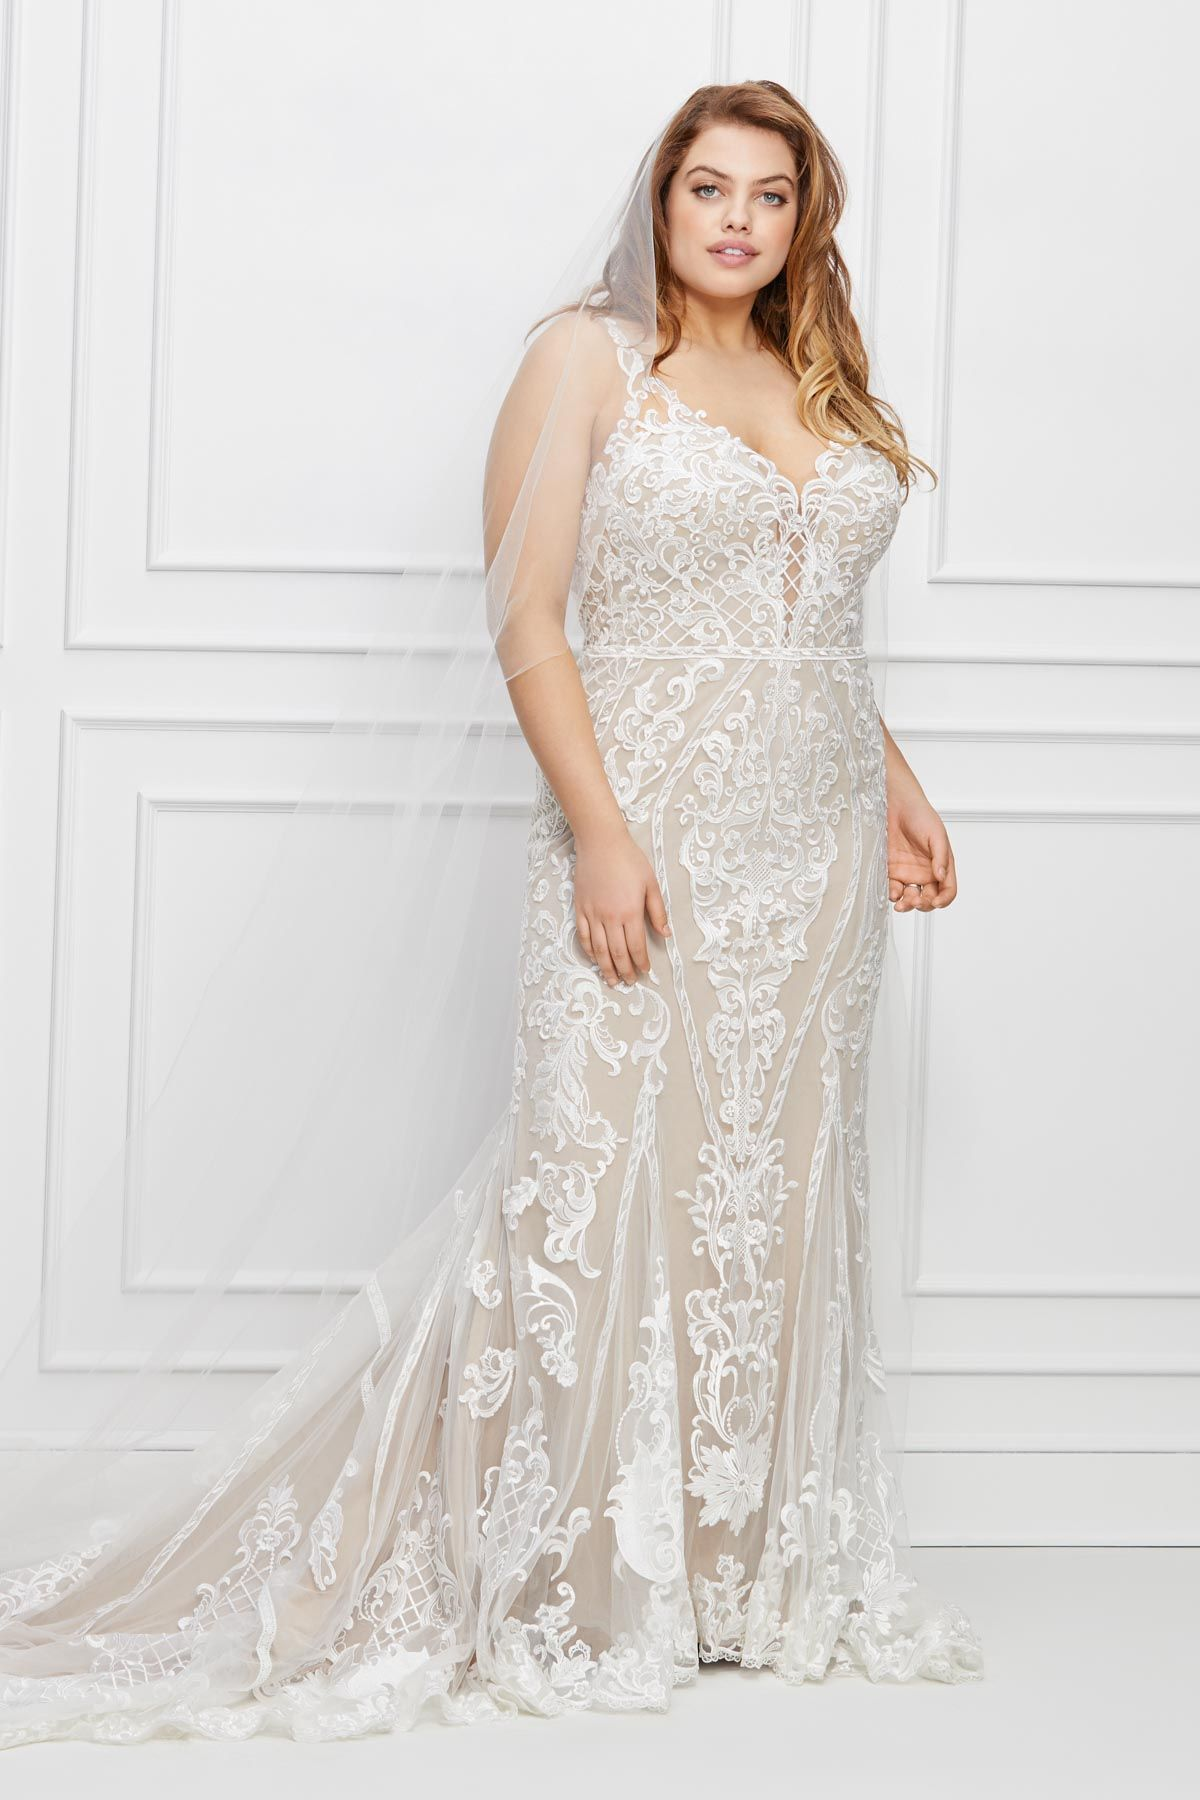 Available at Adore Bridal Boutique!